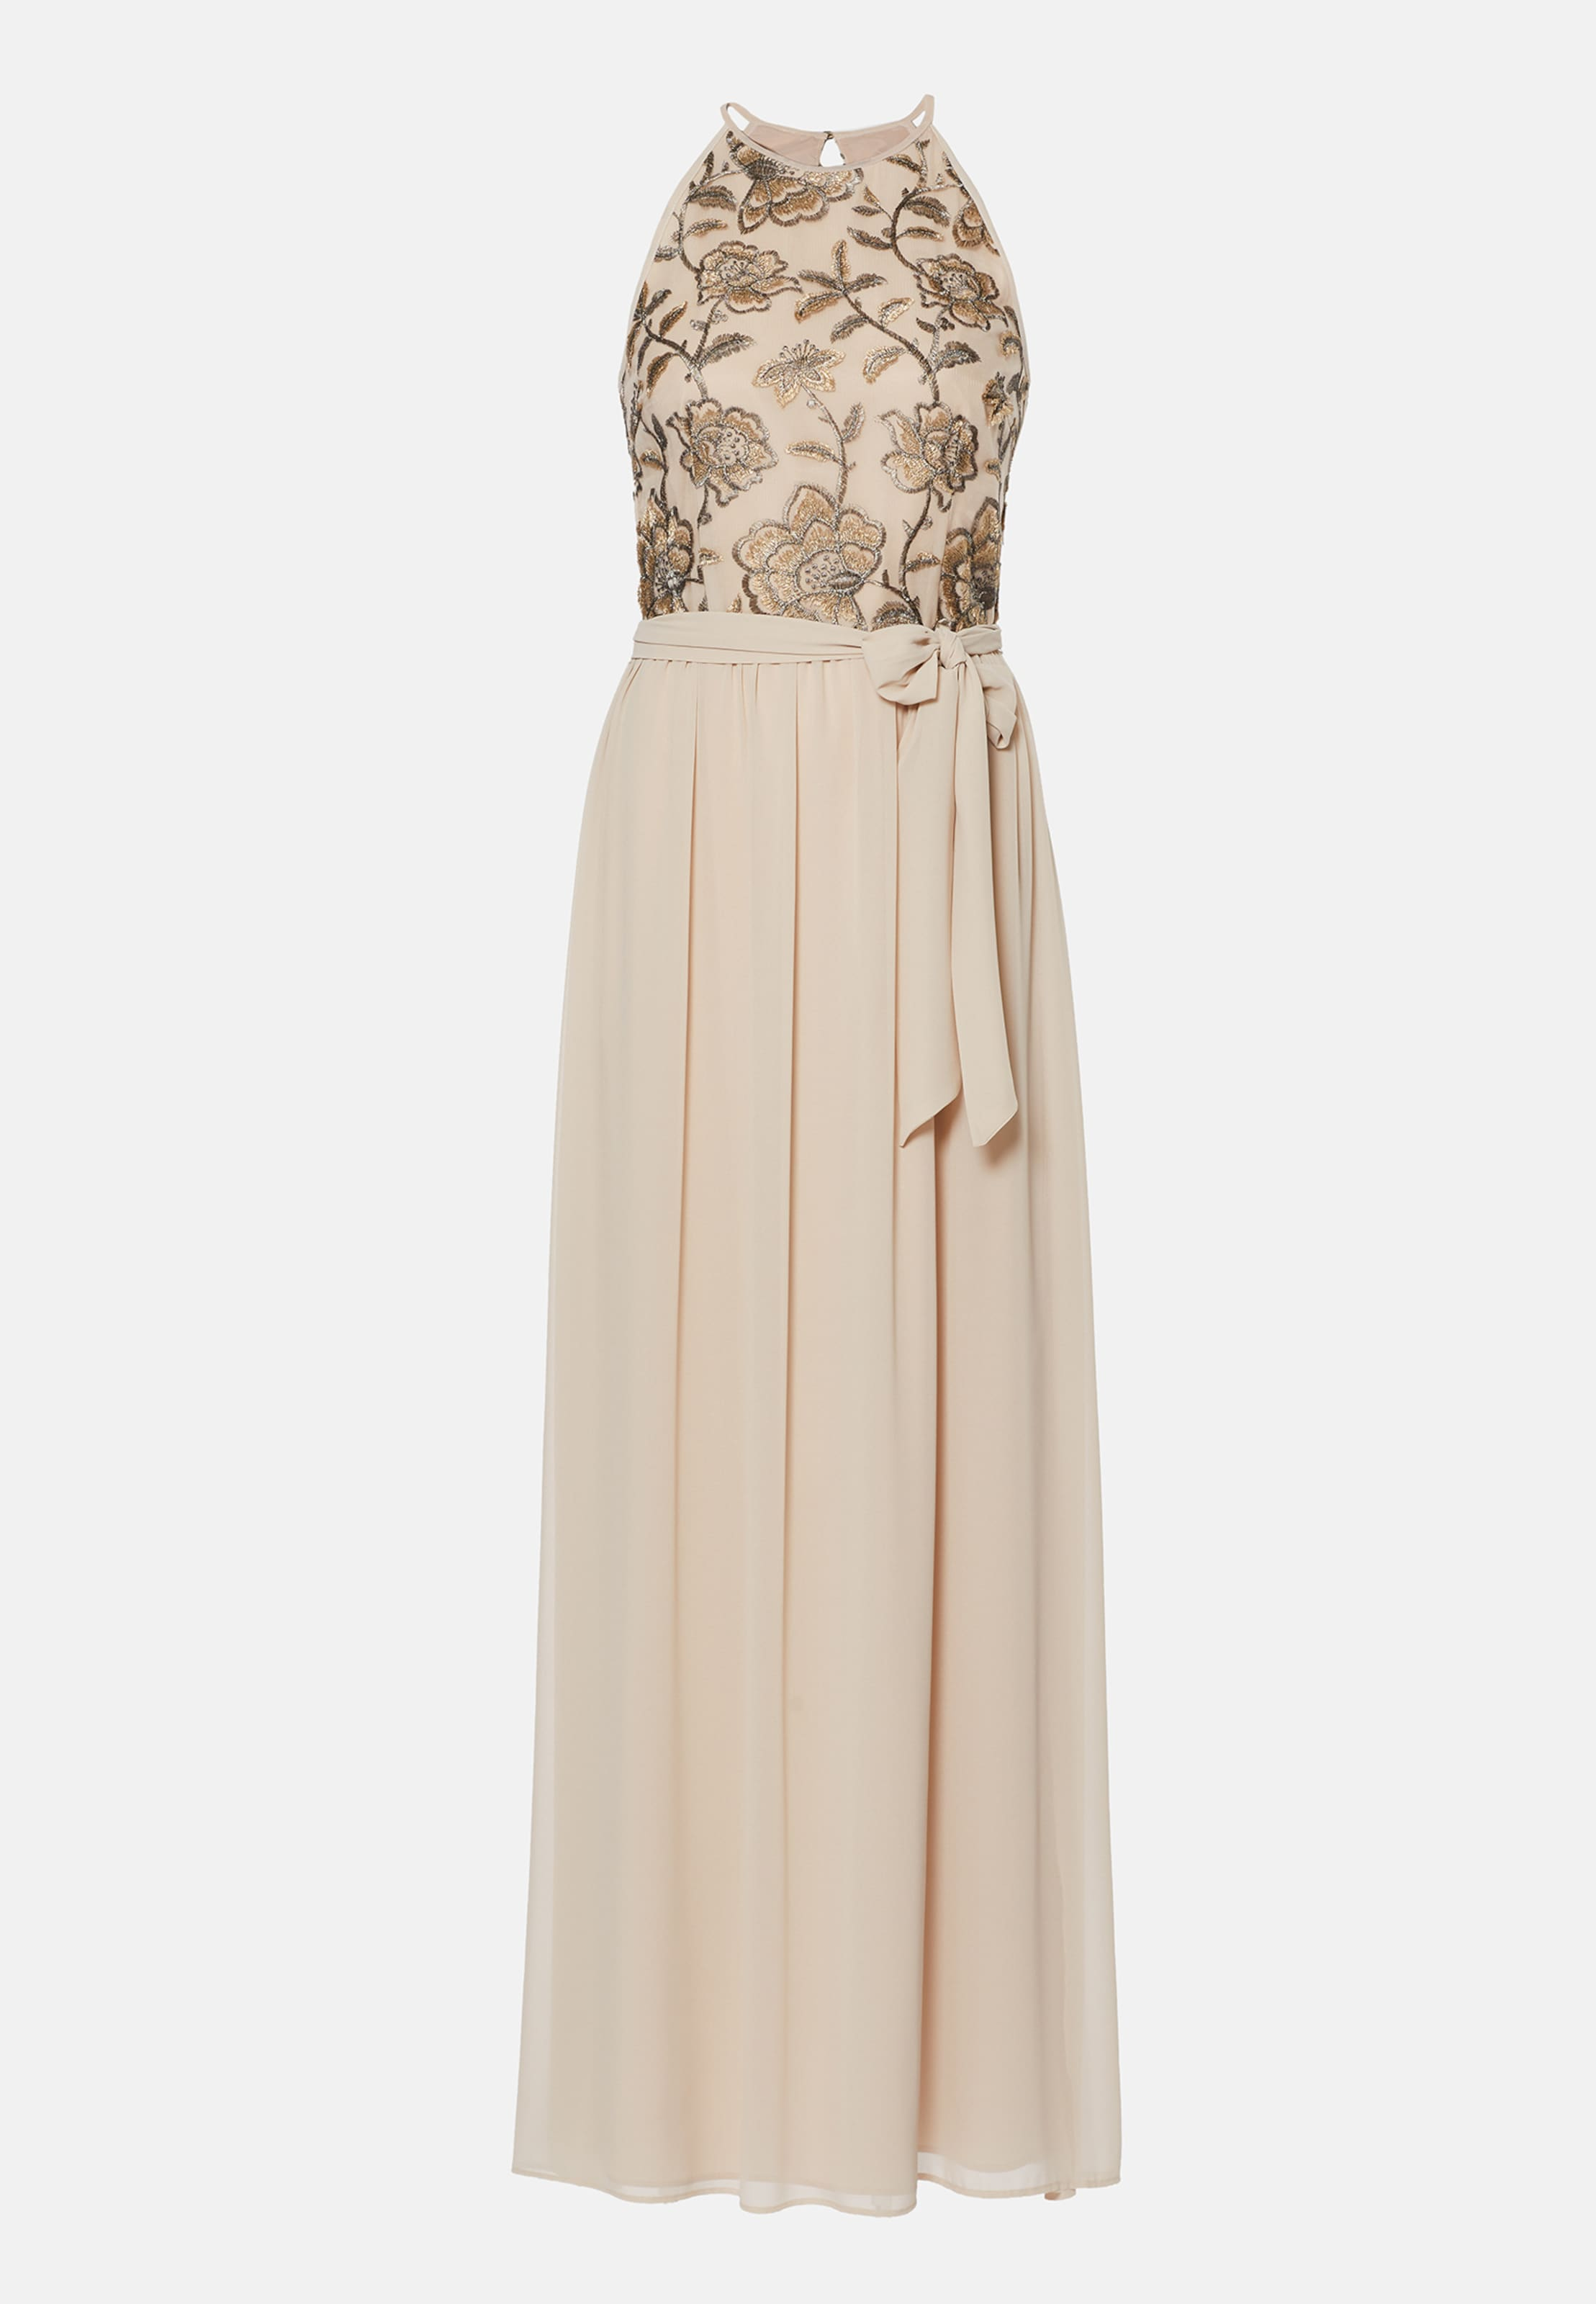 In Couture Kleid Young Nude Barbara Schwarzer By Oknw80P